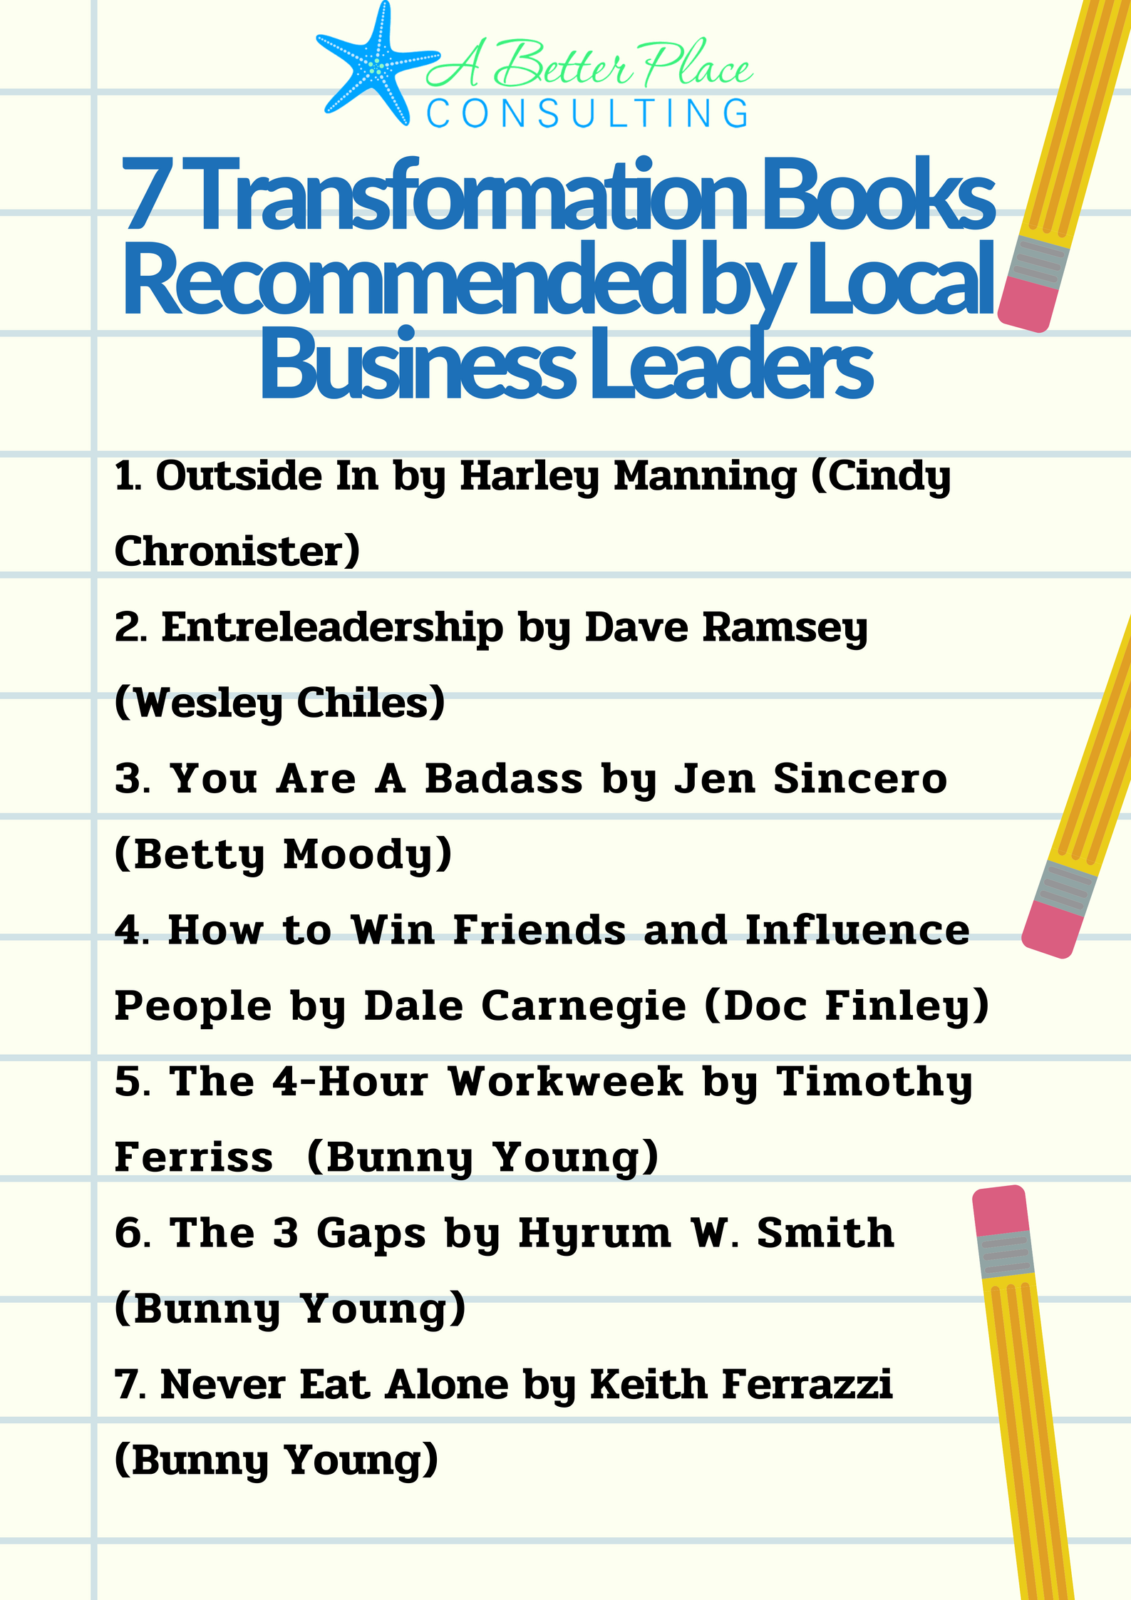 transformational business book recommendations